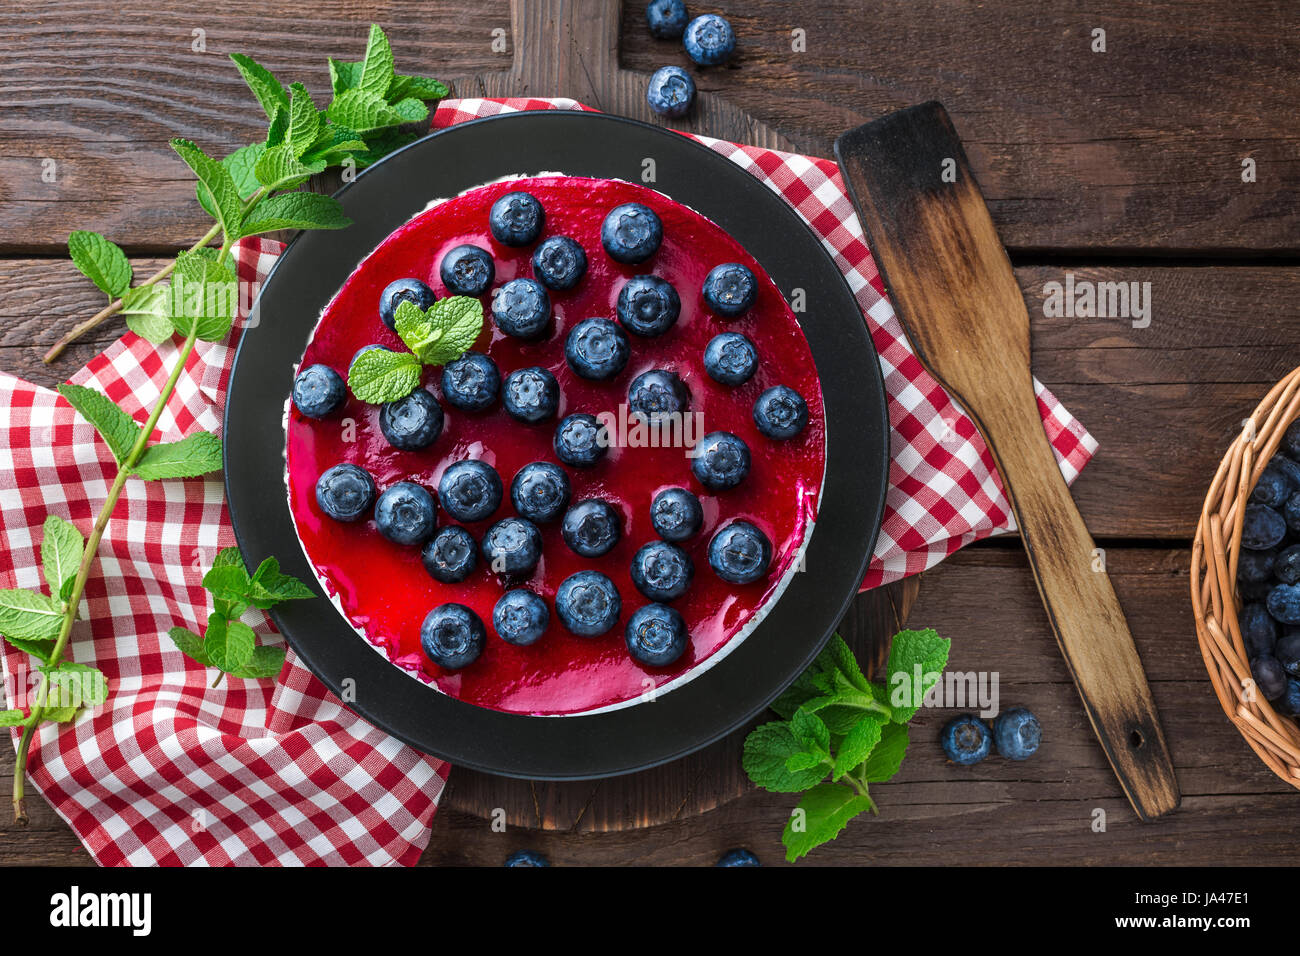 Blueberry cake with fresh berries and marmalade, cheesecake - Stock Image